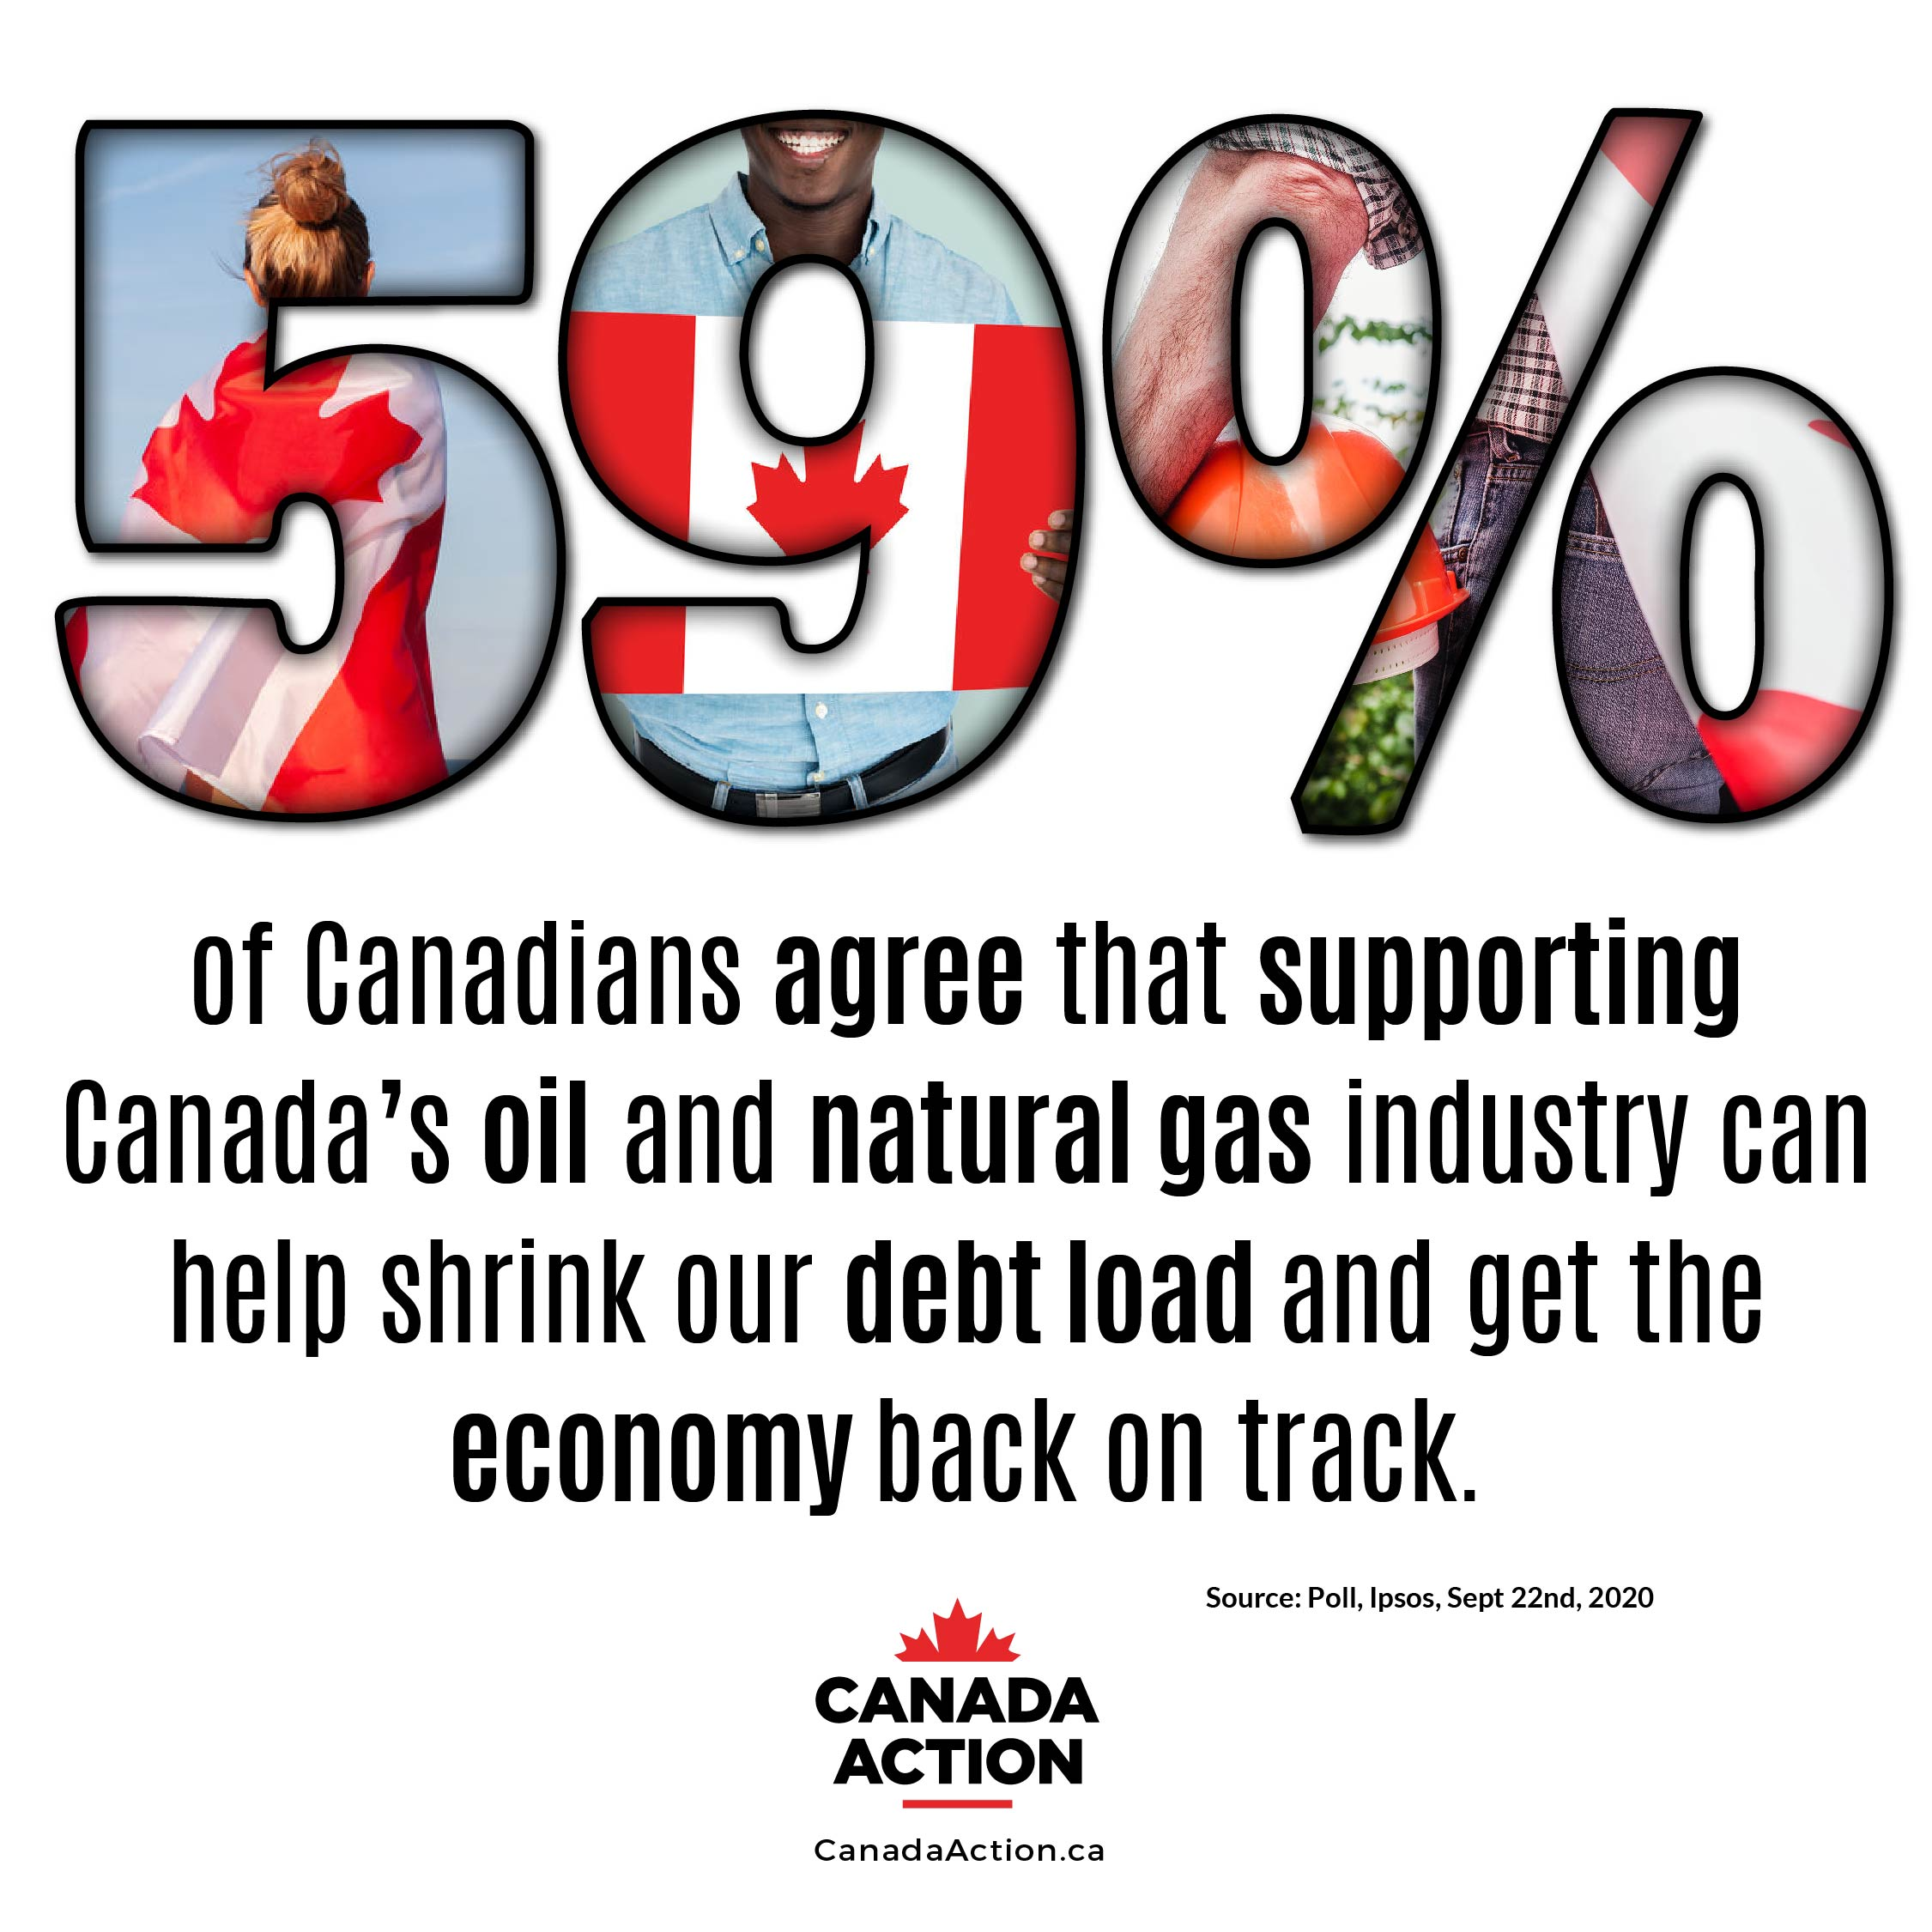 Poll - A Majority of Canadians Support Oil & Natural Gas in Economic Recovery